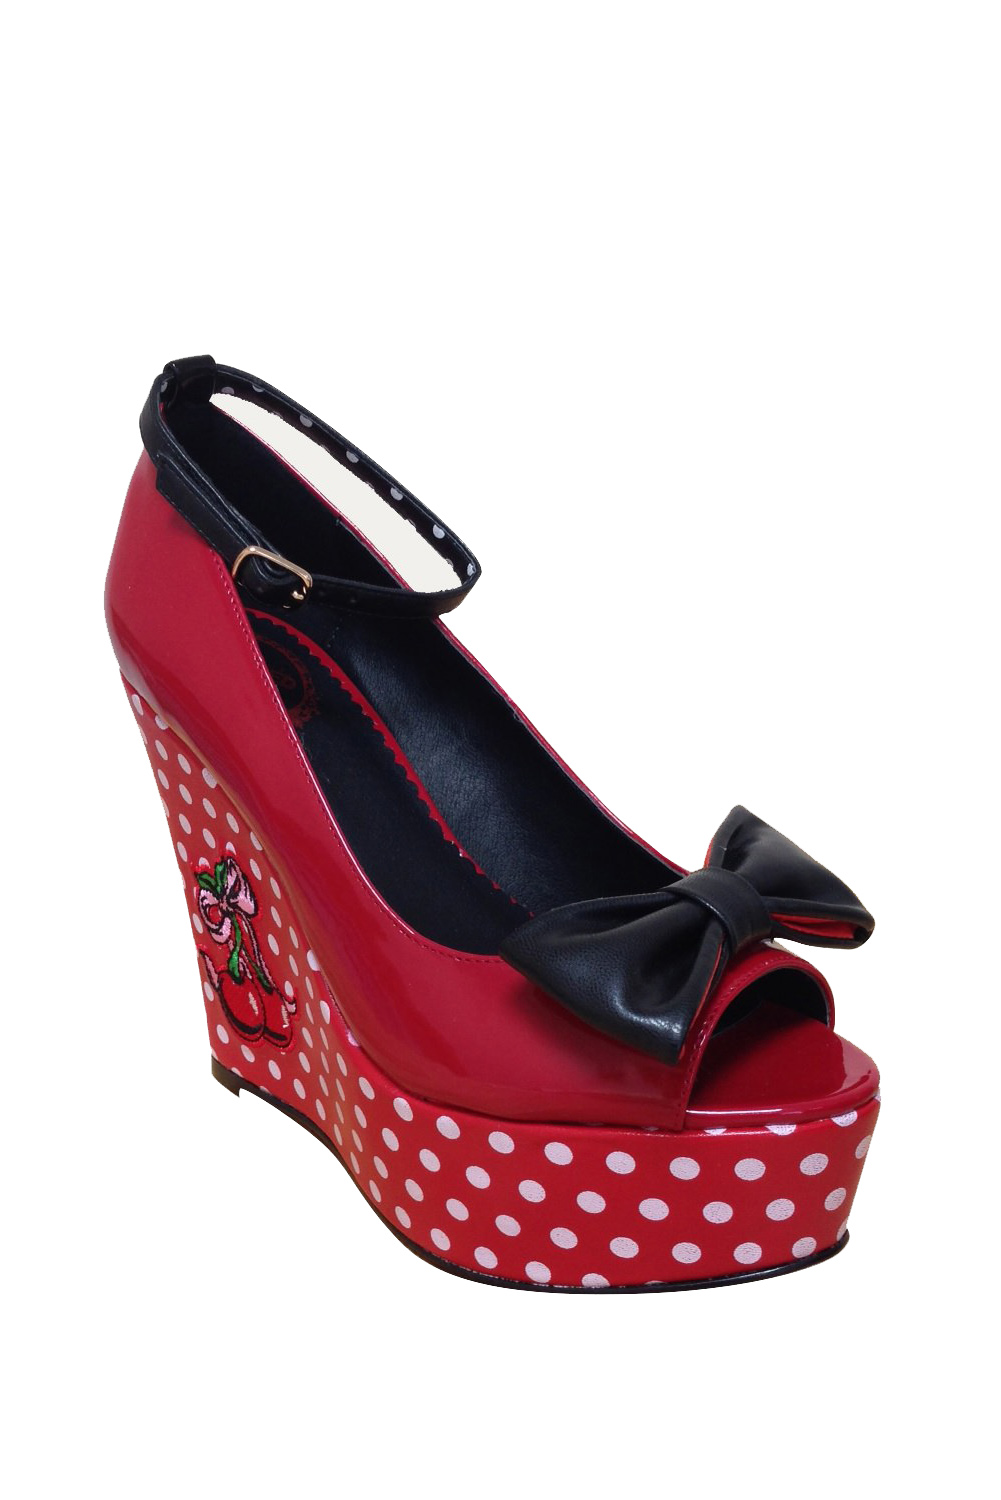 Dancing Days Sophia 50s Platform Cherry Shoes